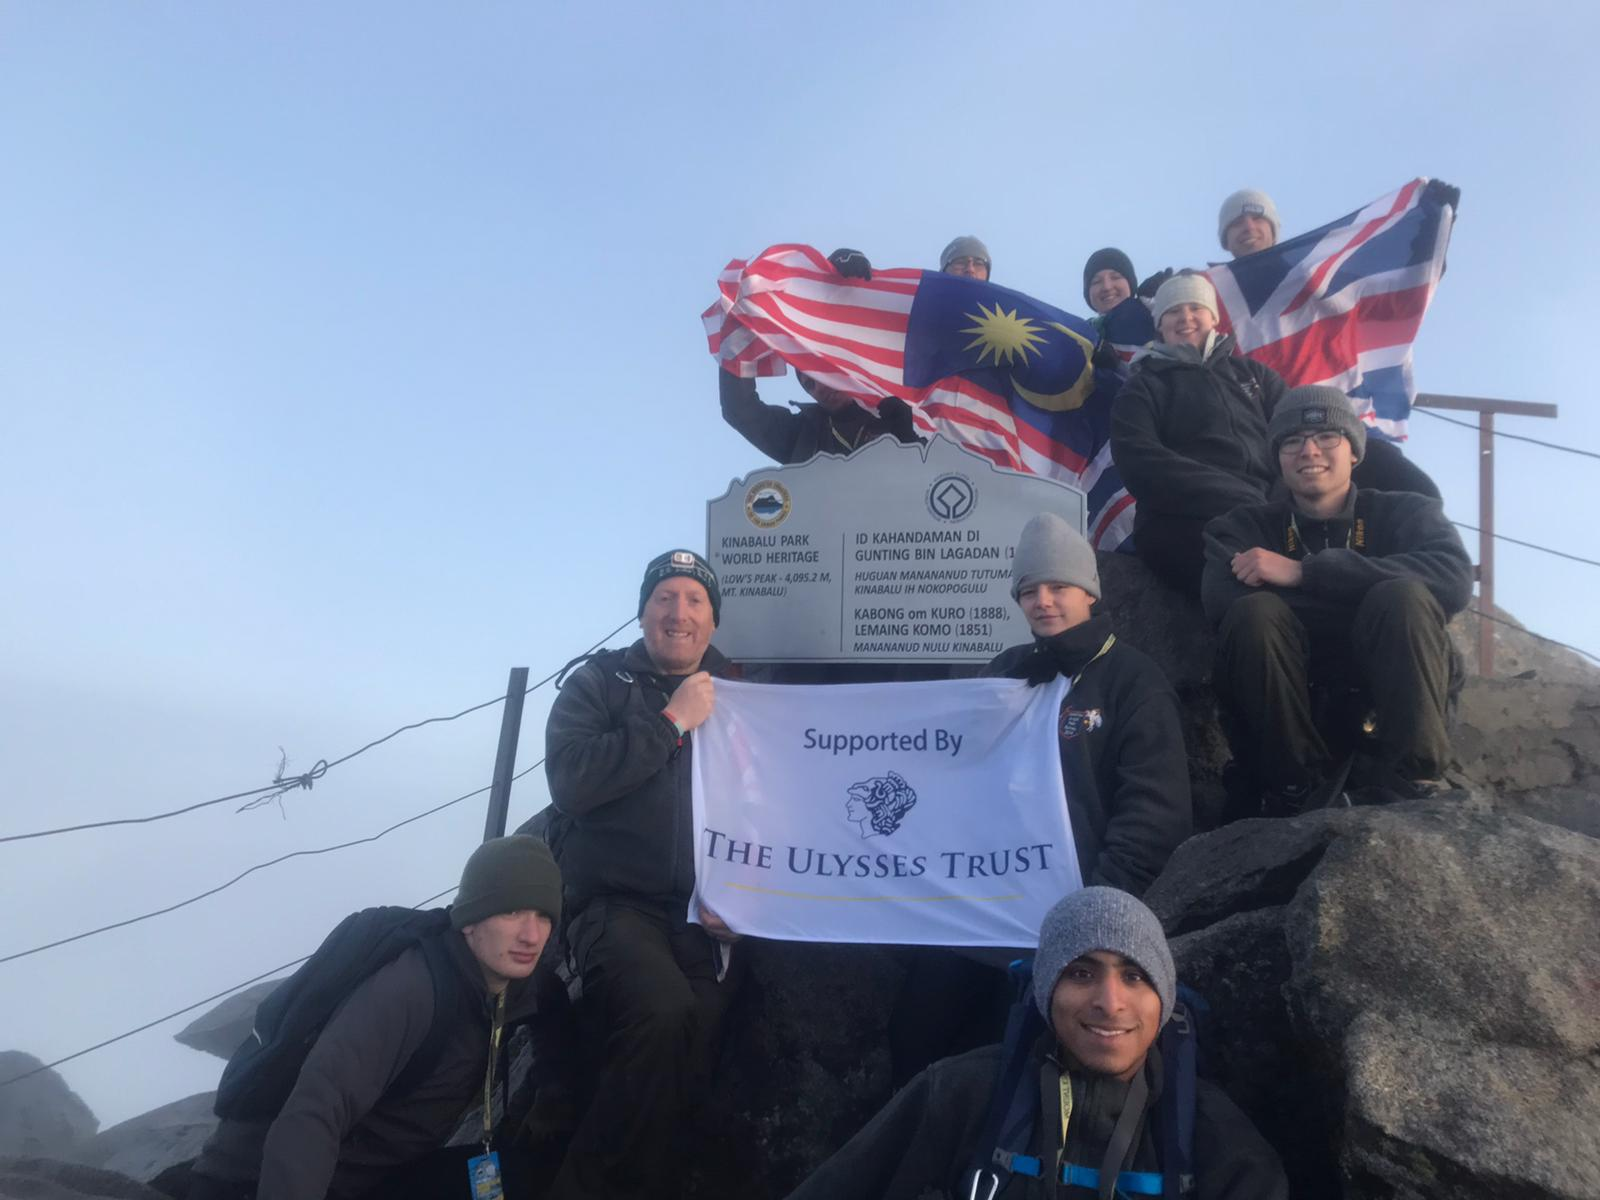 A cadet expedition sponsored by the Ulysses Trust